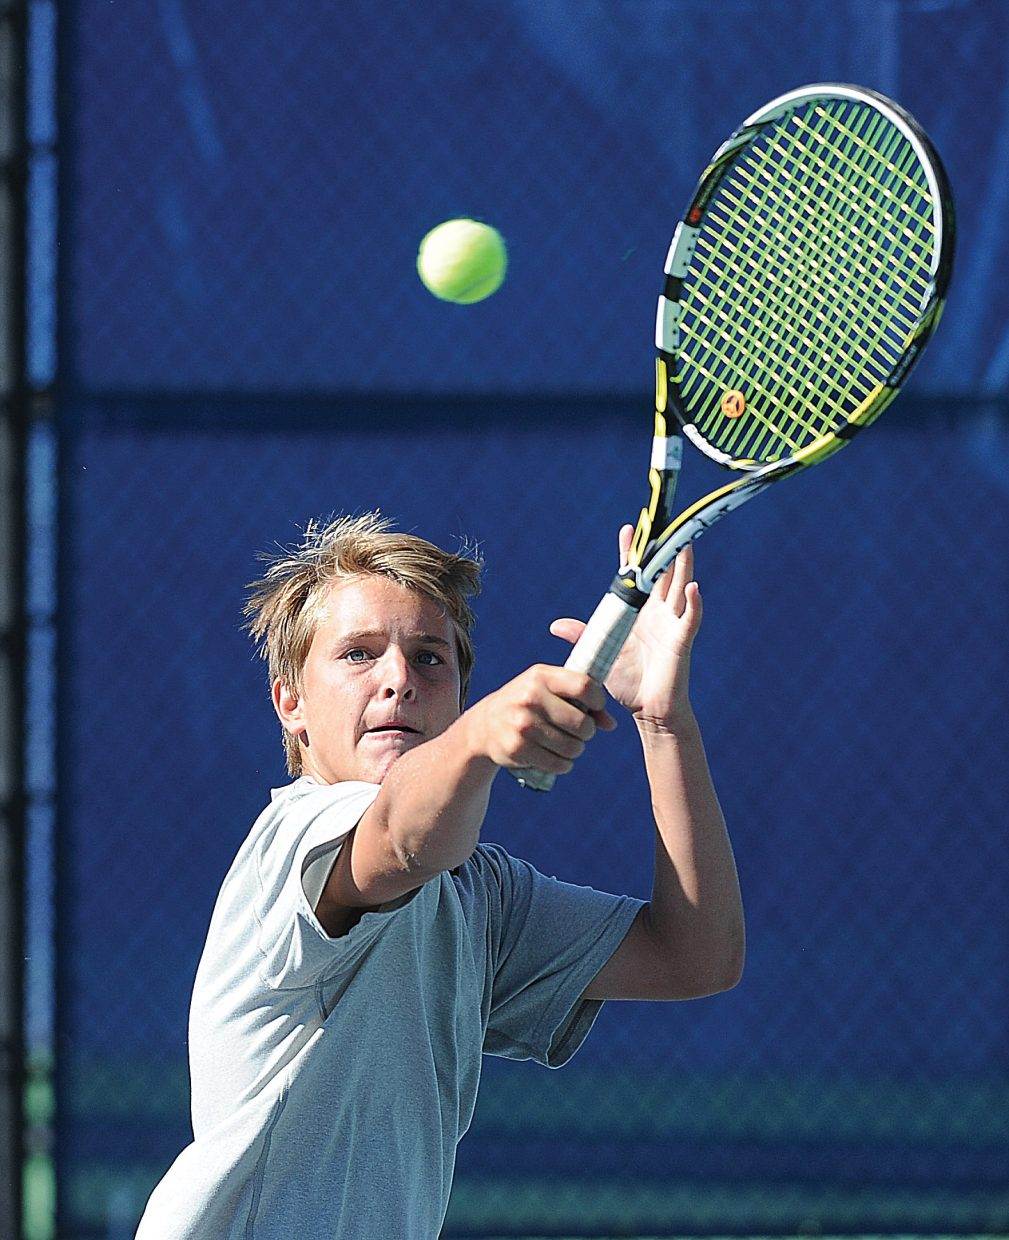 Steamboat Springs tennis player Matthew White returns a shot during a match against Vail Christian on Tuesday afternoon at the Tennis Center at Steamboat Springs. The Sailors swept the match, picking up a 7-0 victory.